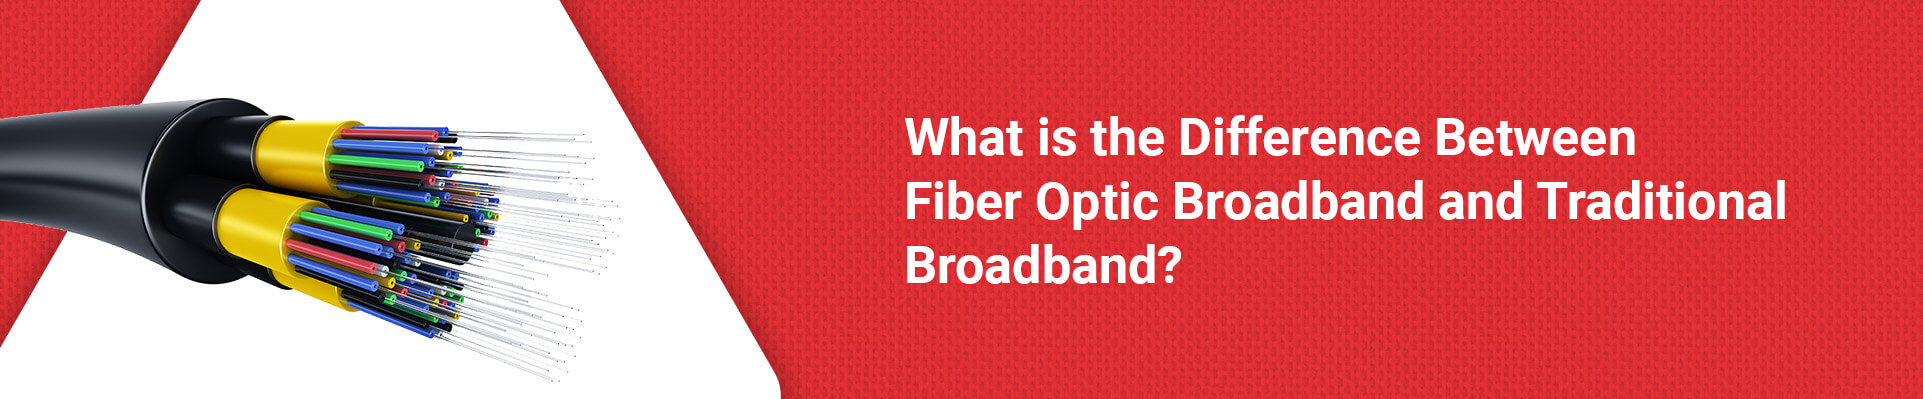 What is the Difference Between Fiber Optic Broadband and Traditional Broadband?